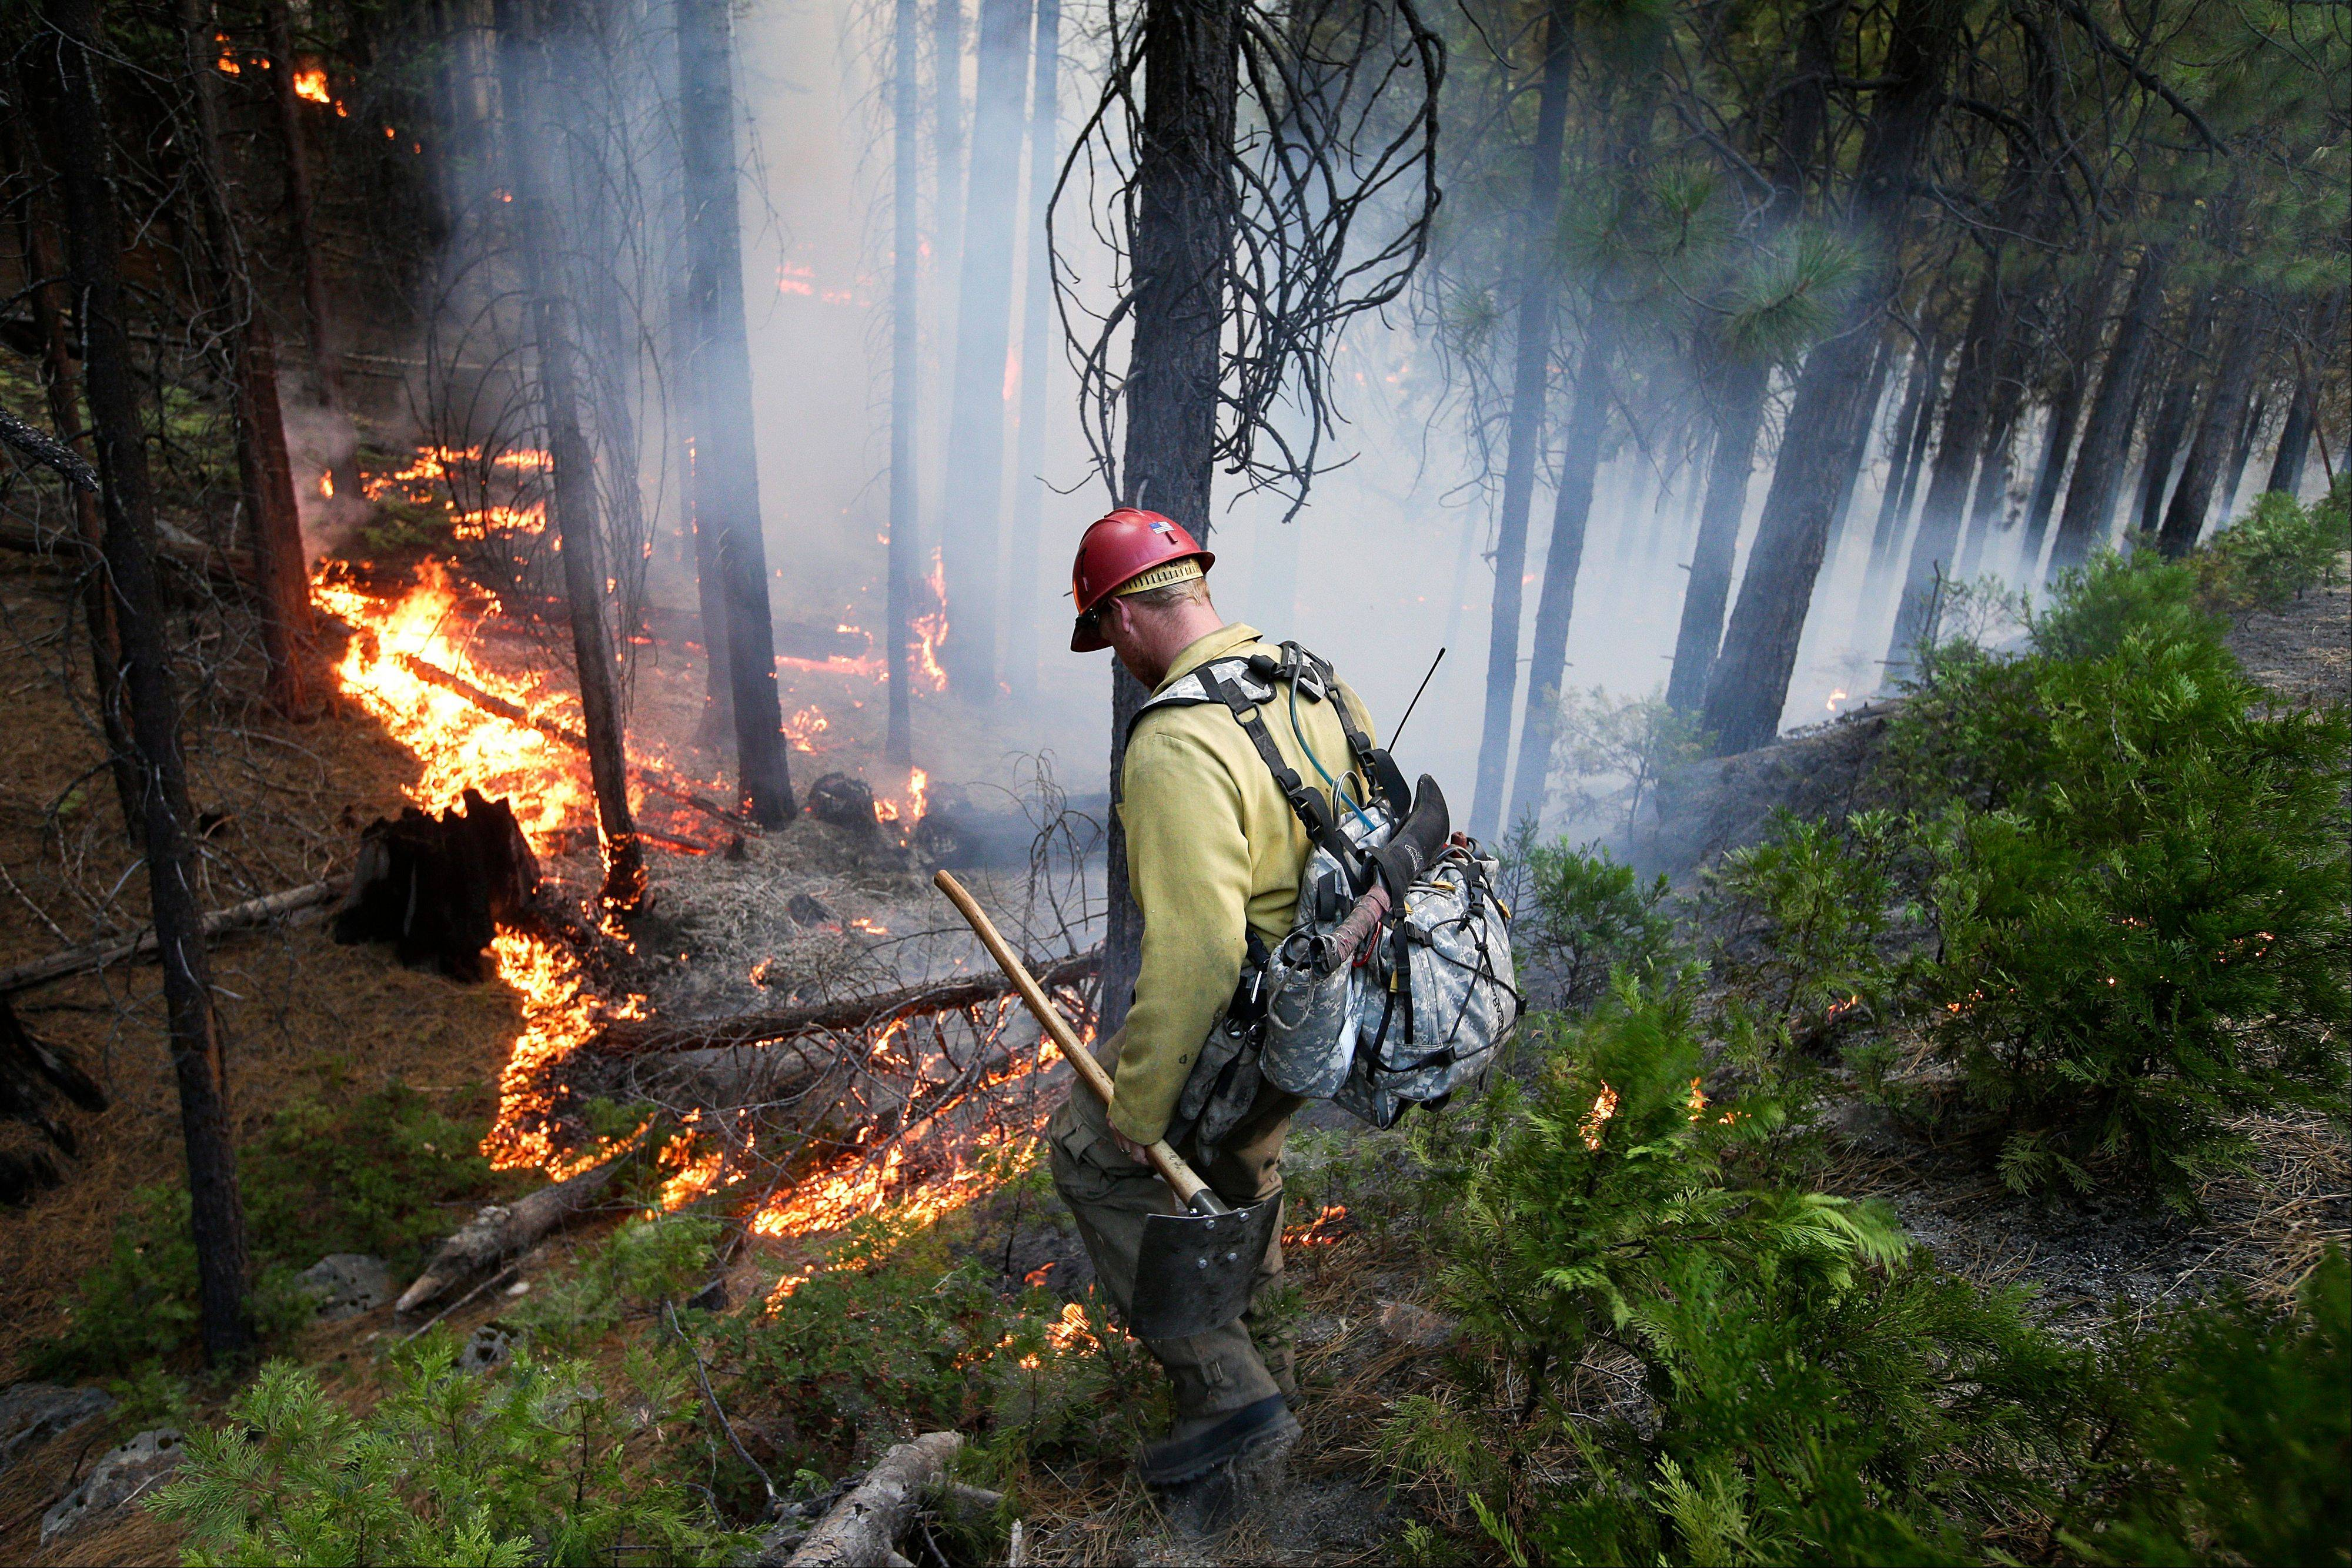 Firefighter Russell Mitchell monitors a back burn during the Rim Fire near Yosemite National Park, Calif., on Tuesday.